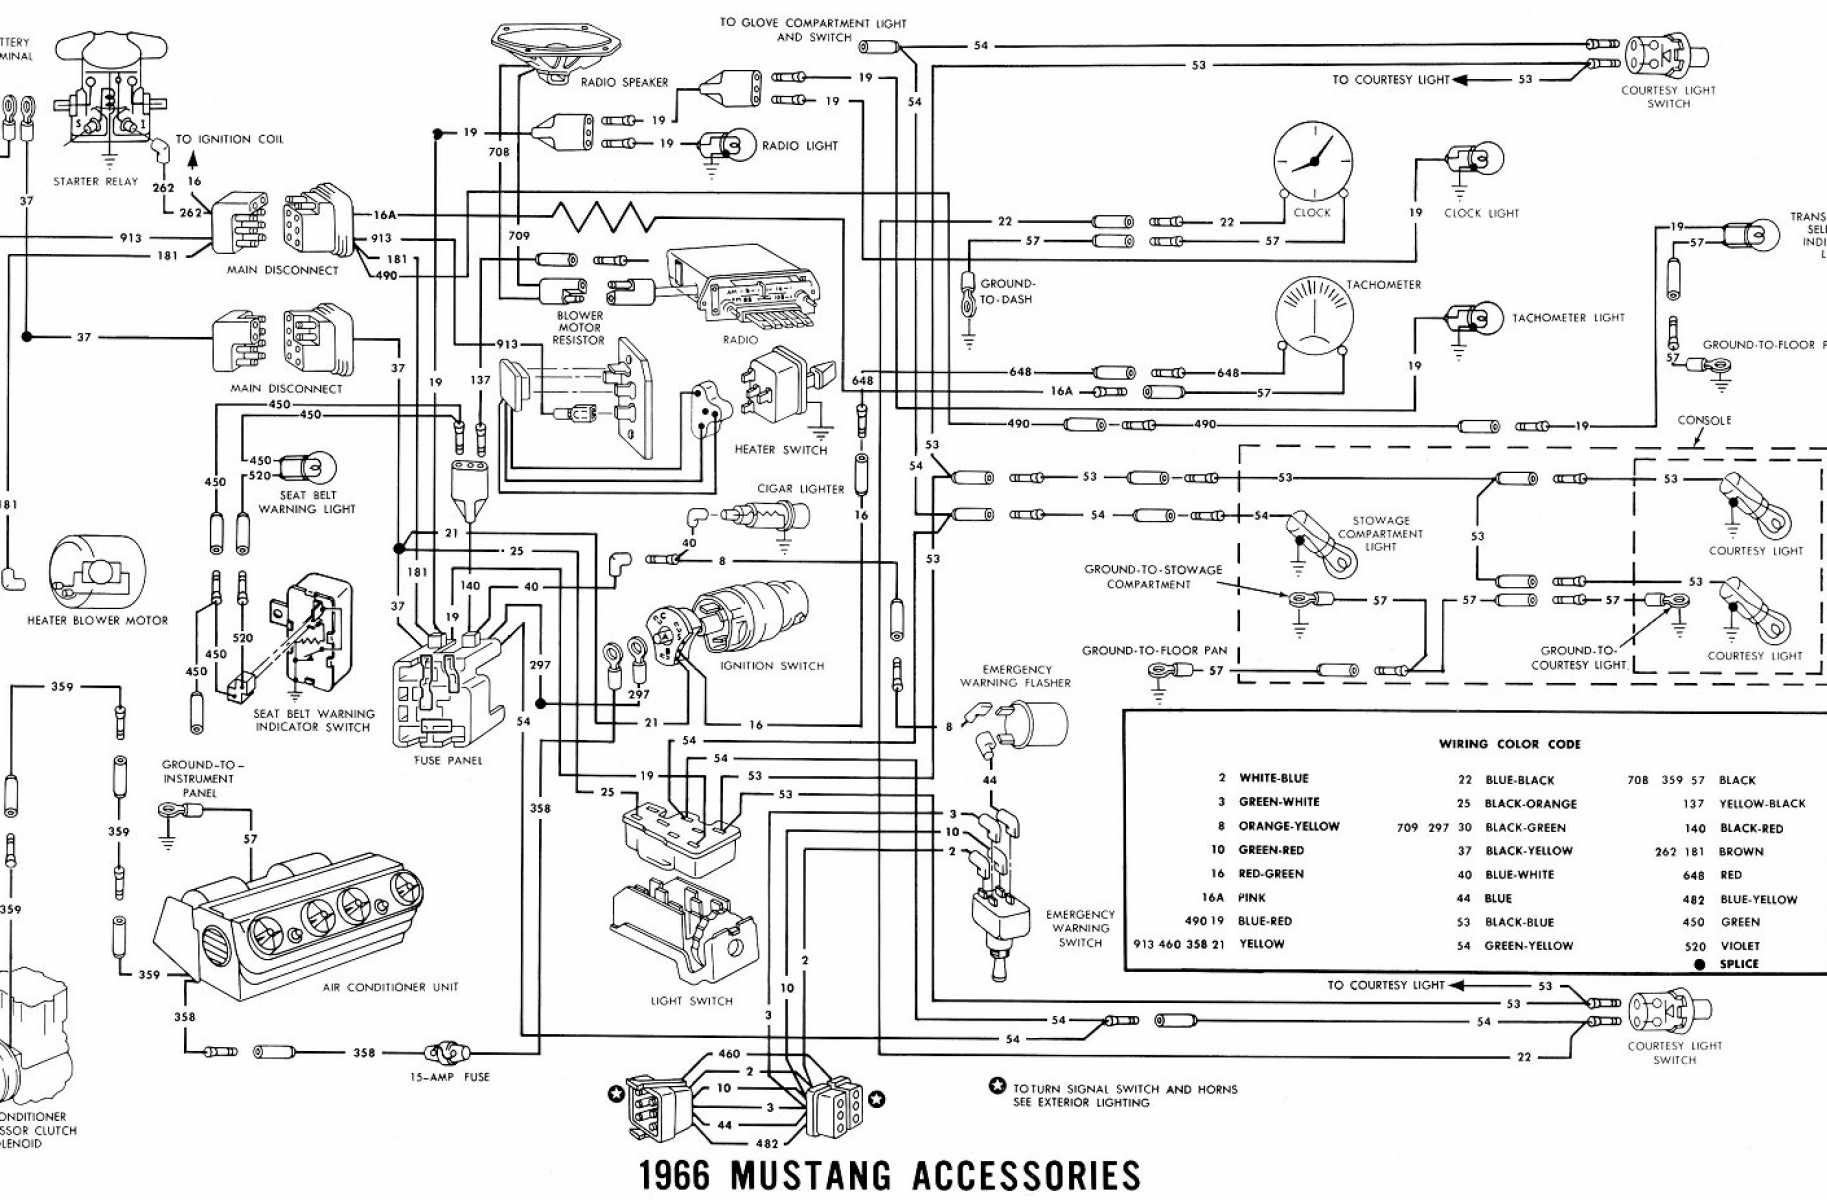 Western Snow Plow Wiring Schematic For Chevy Truck On on